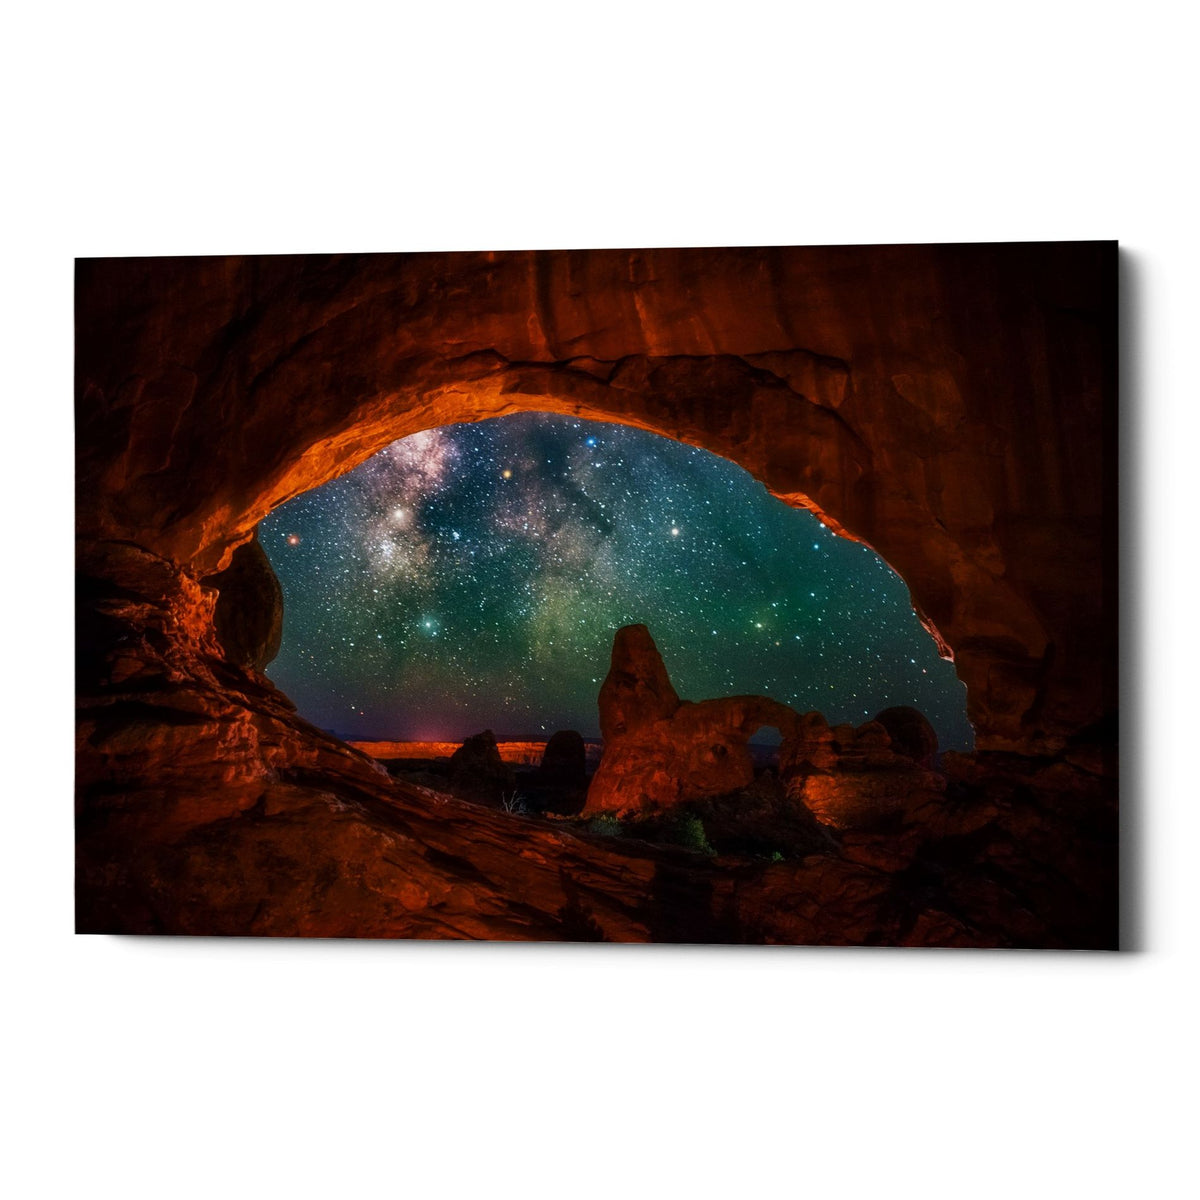 "Epic Graffiti ""Window to the Heavens"" by Darren White, Giclee Canvas Wall Art"